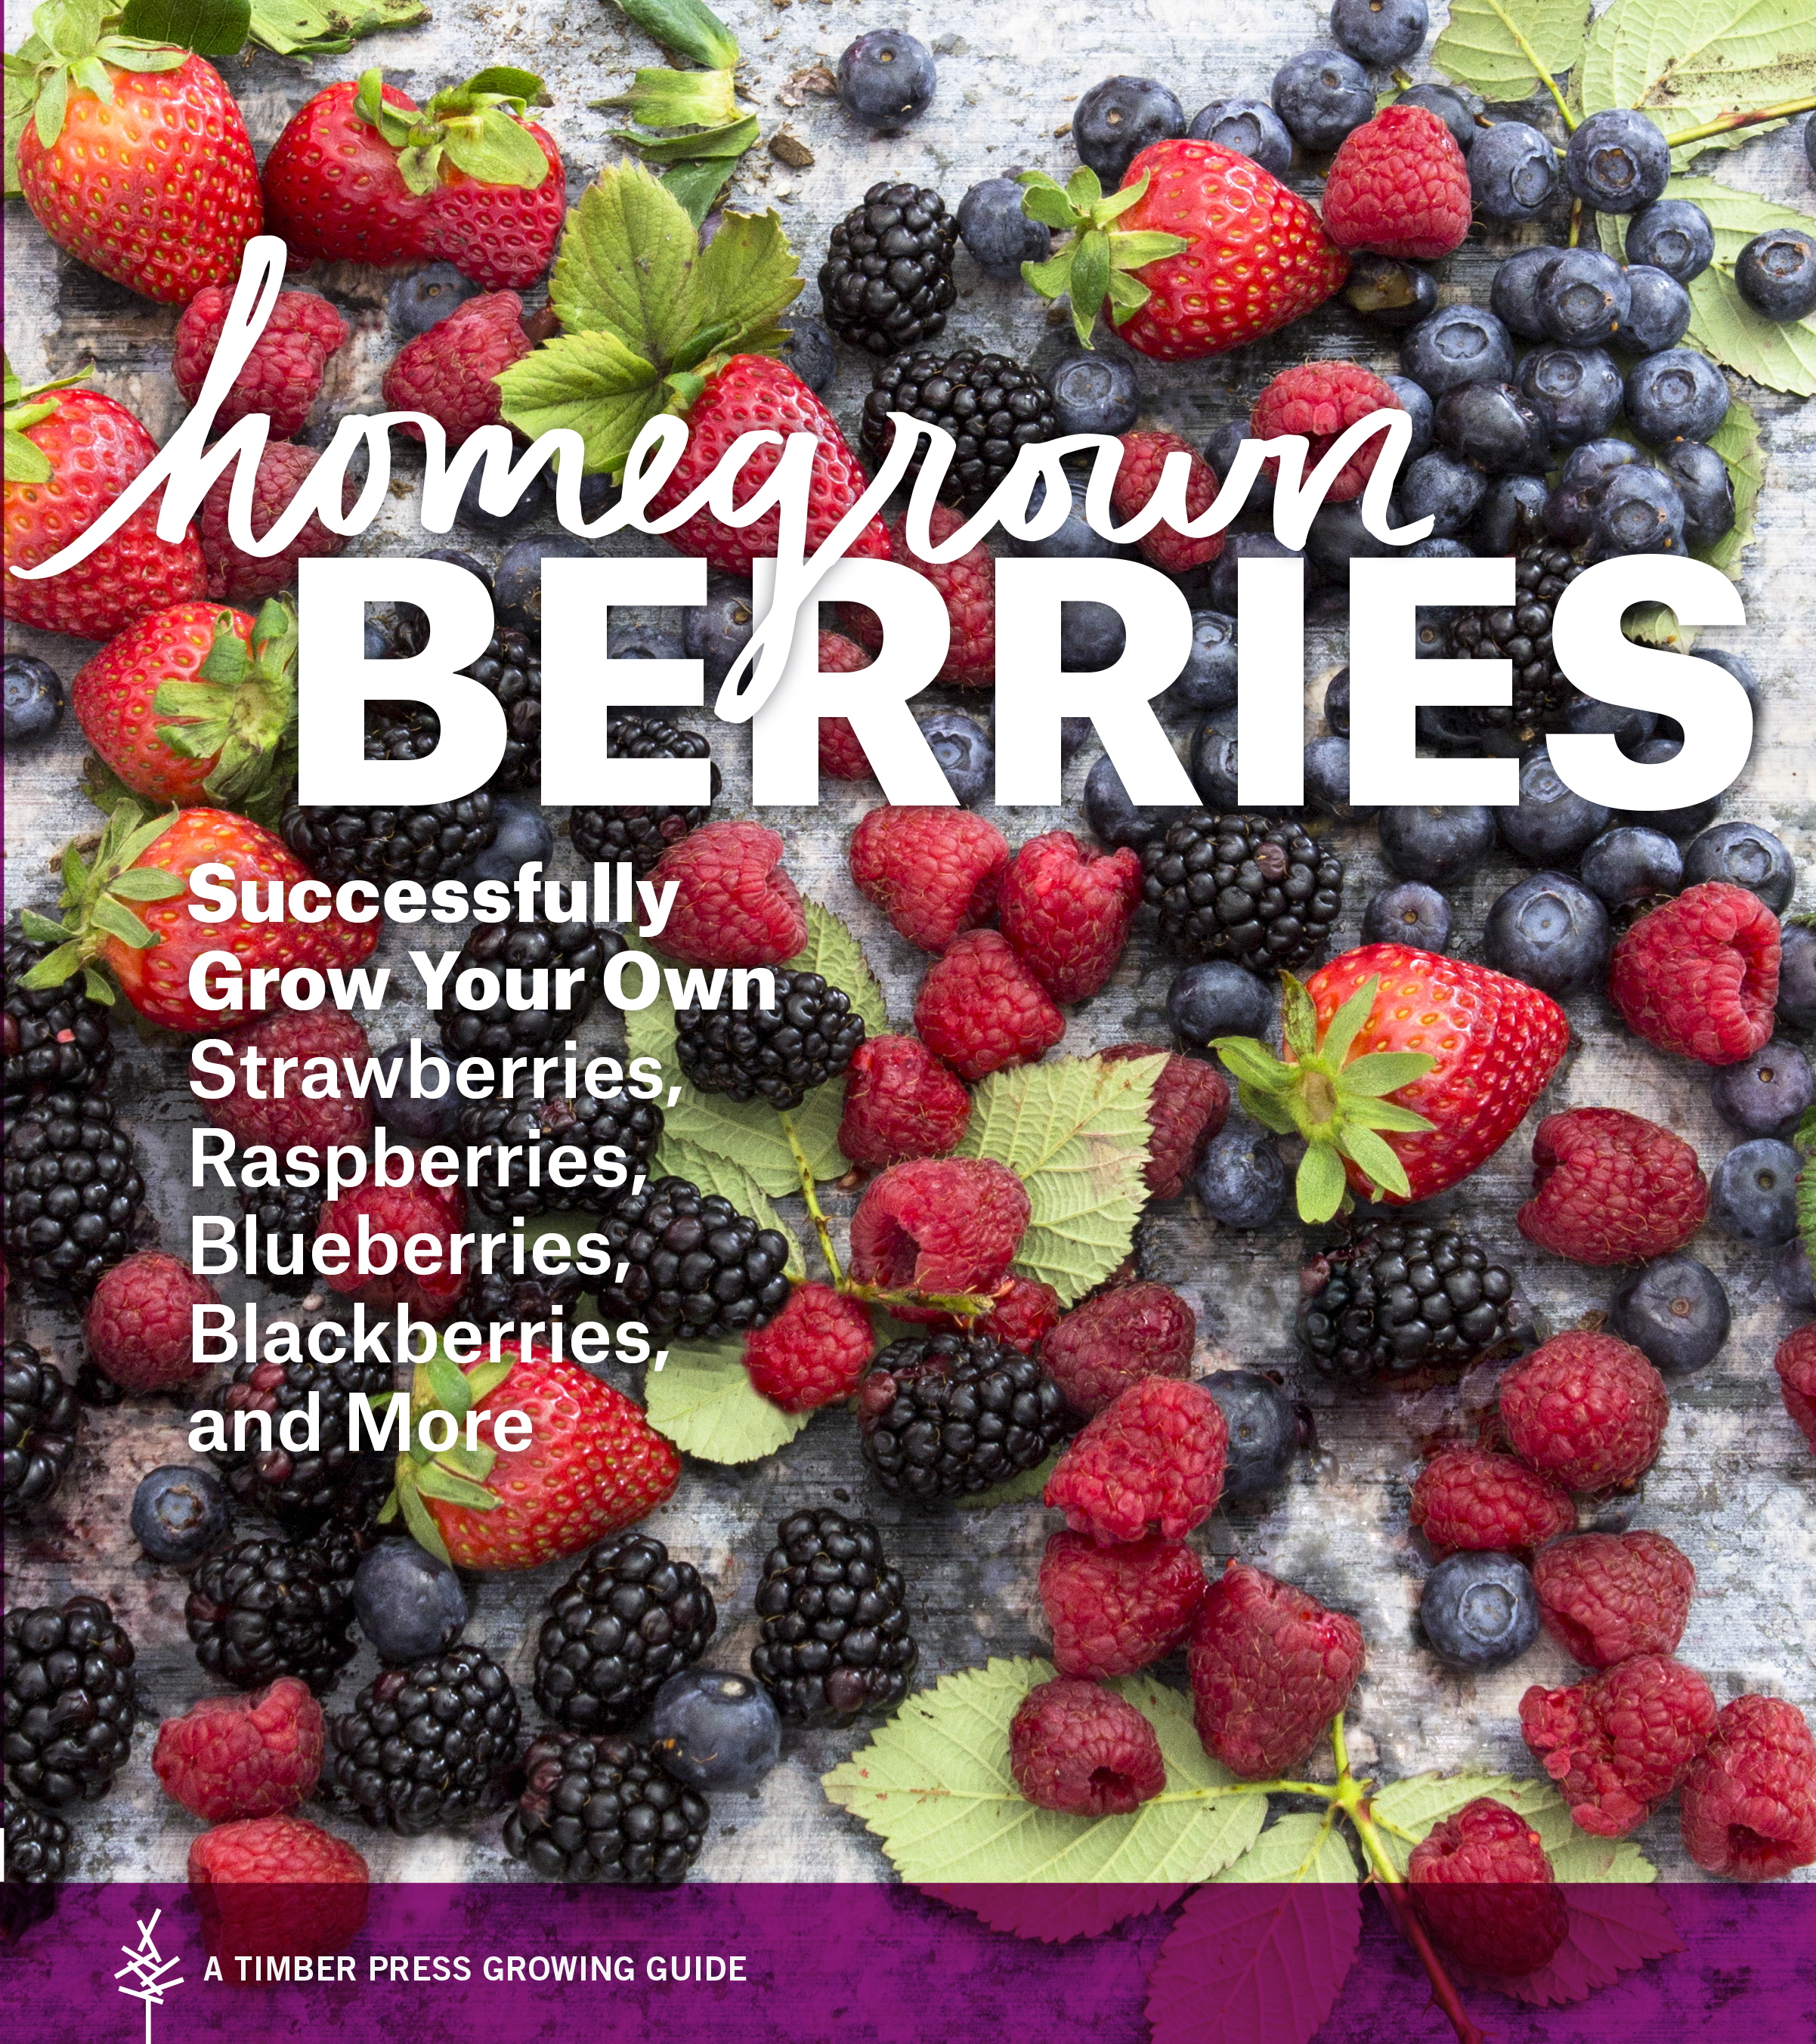 Homegrown Berries Successfully Grow Your Own Strawberries, Raspberries, Blueberries, Blackberries, and More